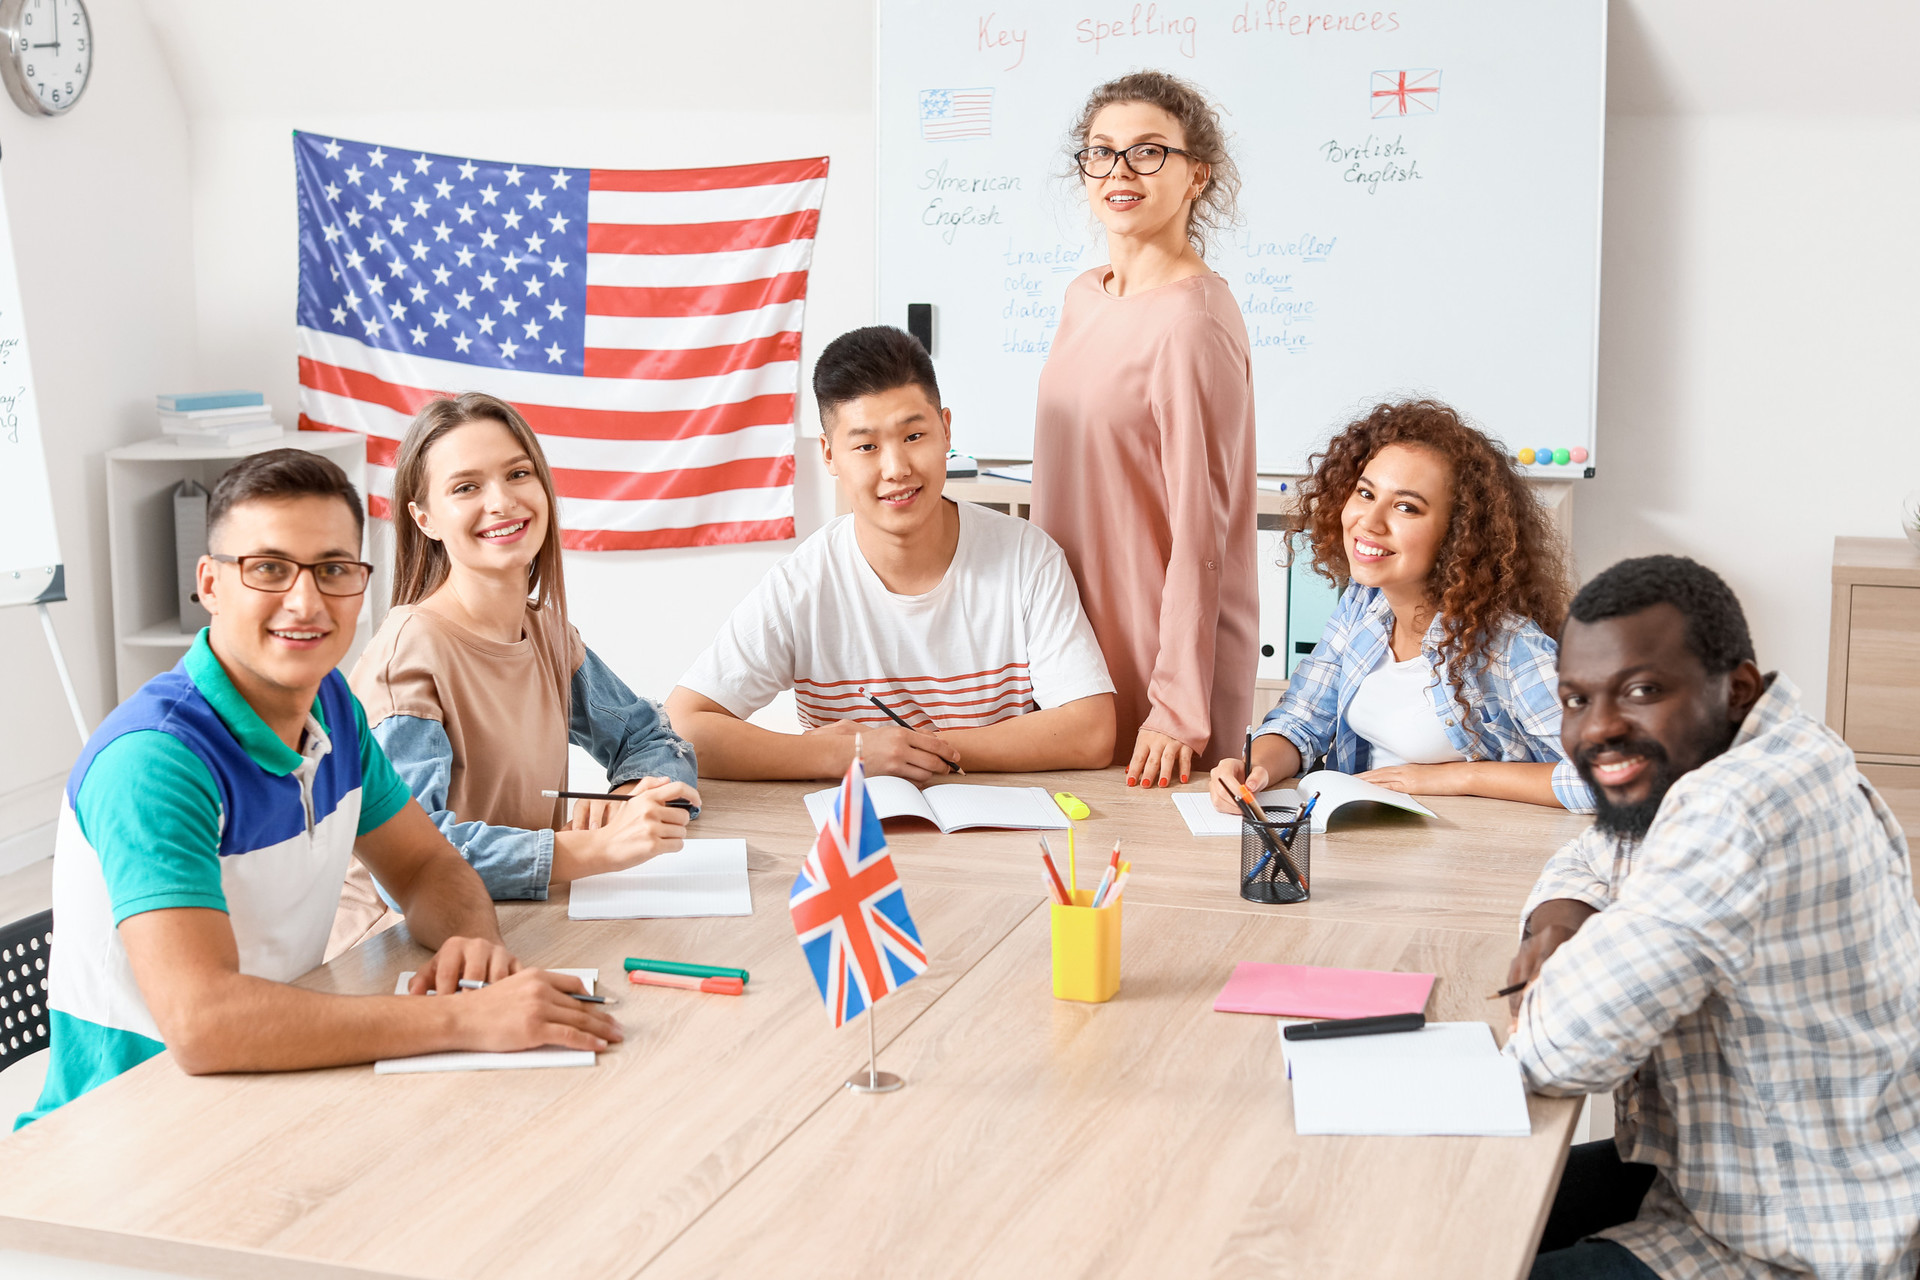 Students of various ethnic backgrounds sit around a table in front of an American flag